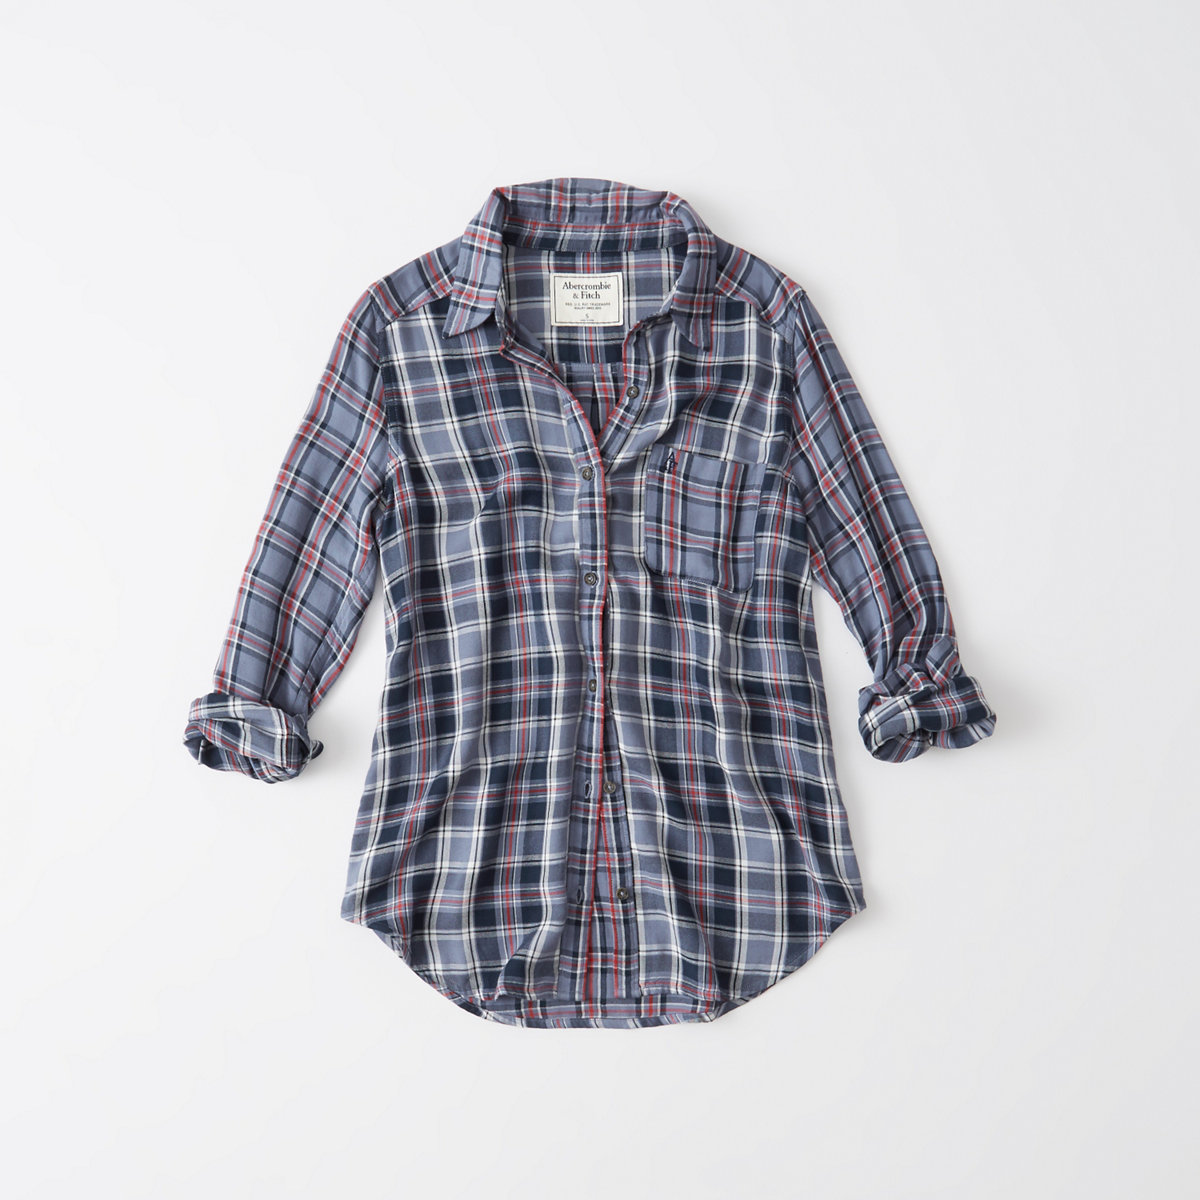 Signature Duofold Shirt